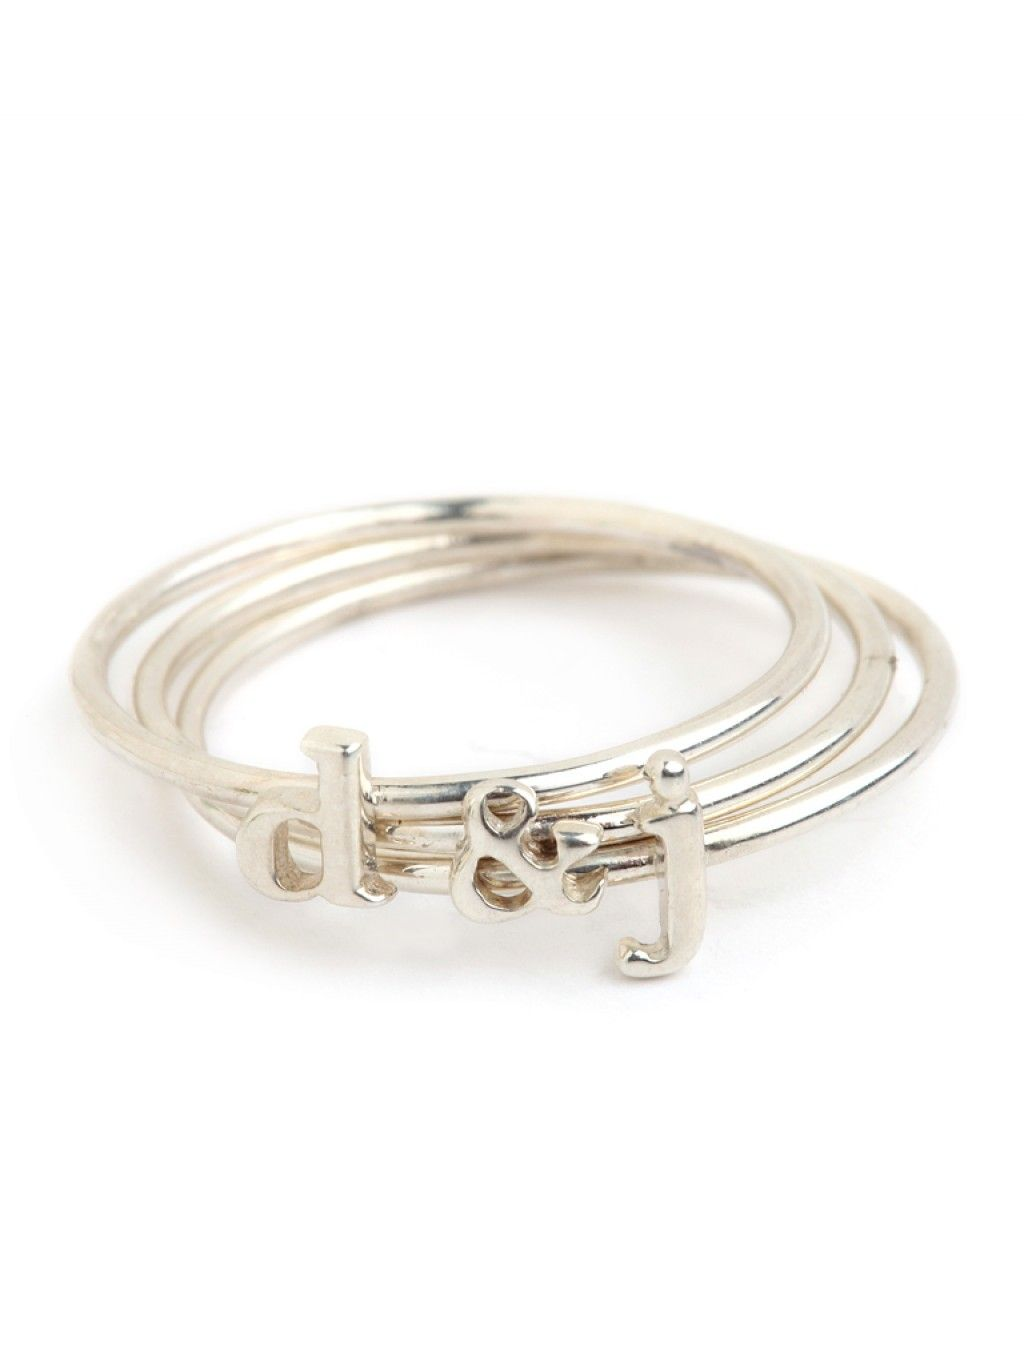 Silver amp ring how cute is this stuff i want pinterest